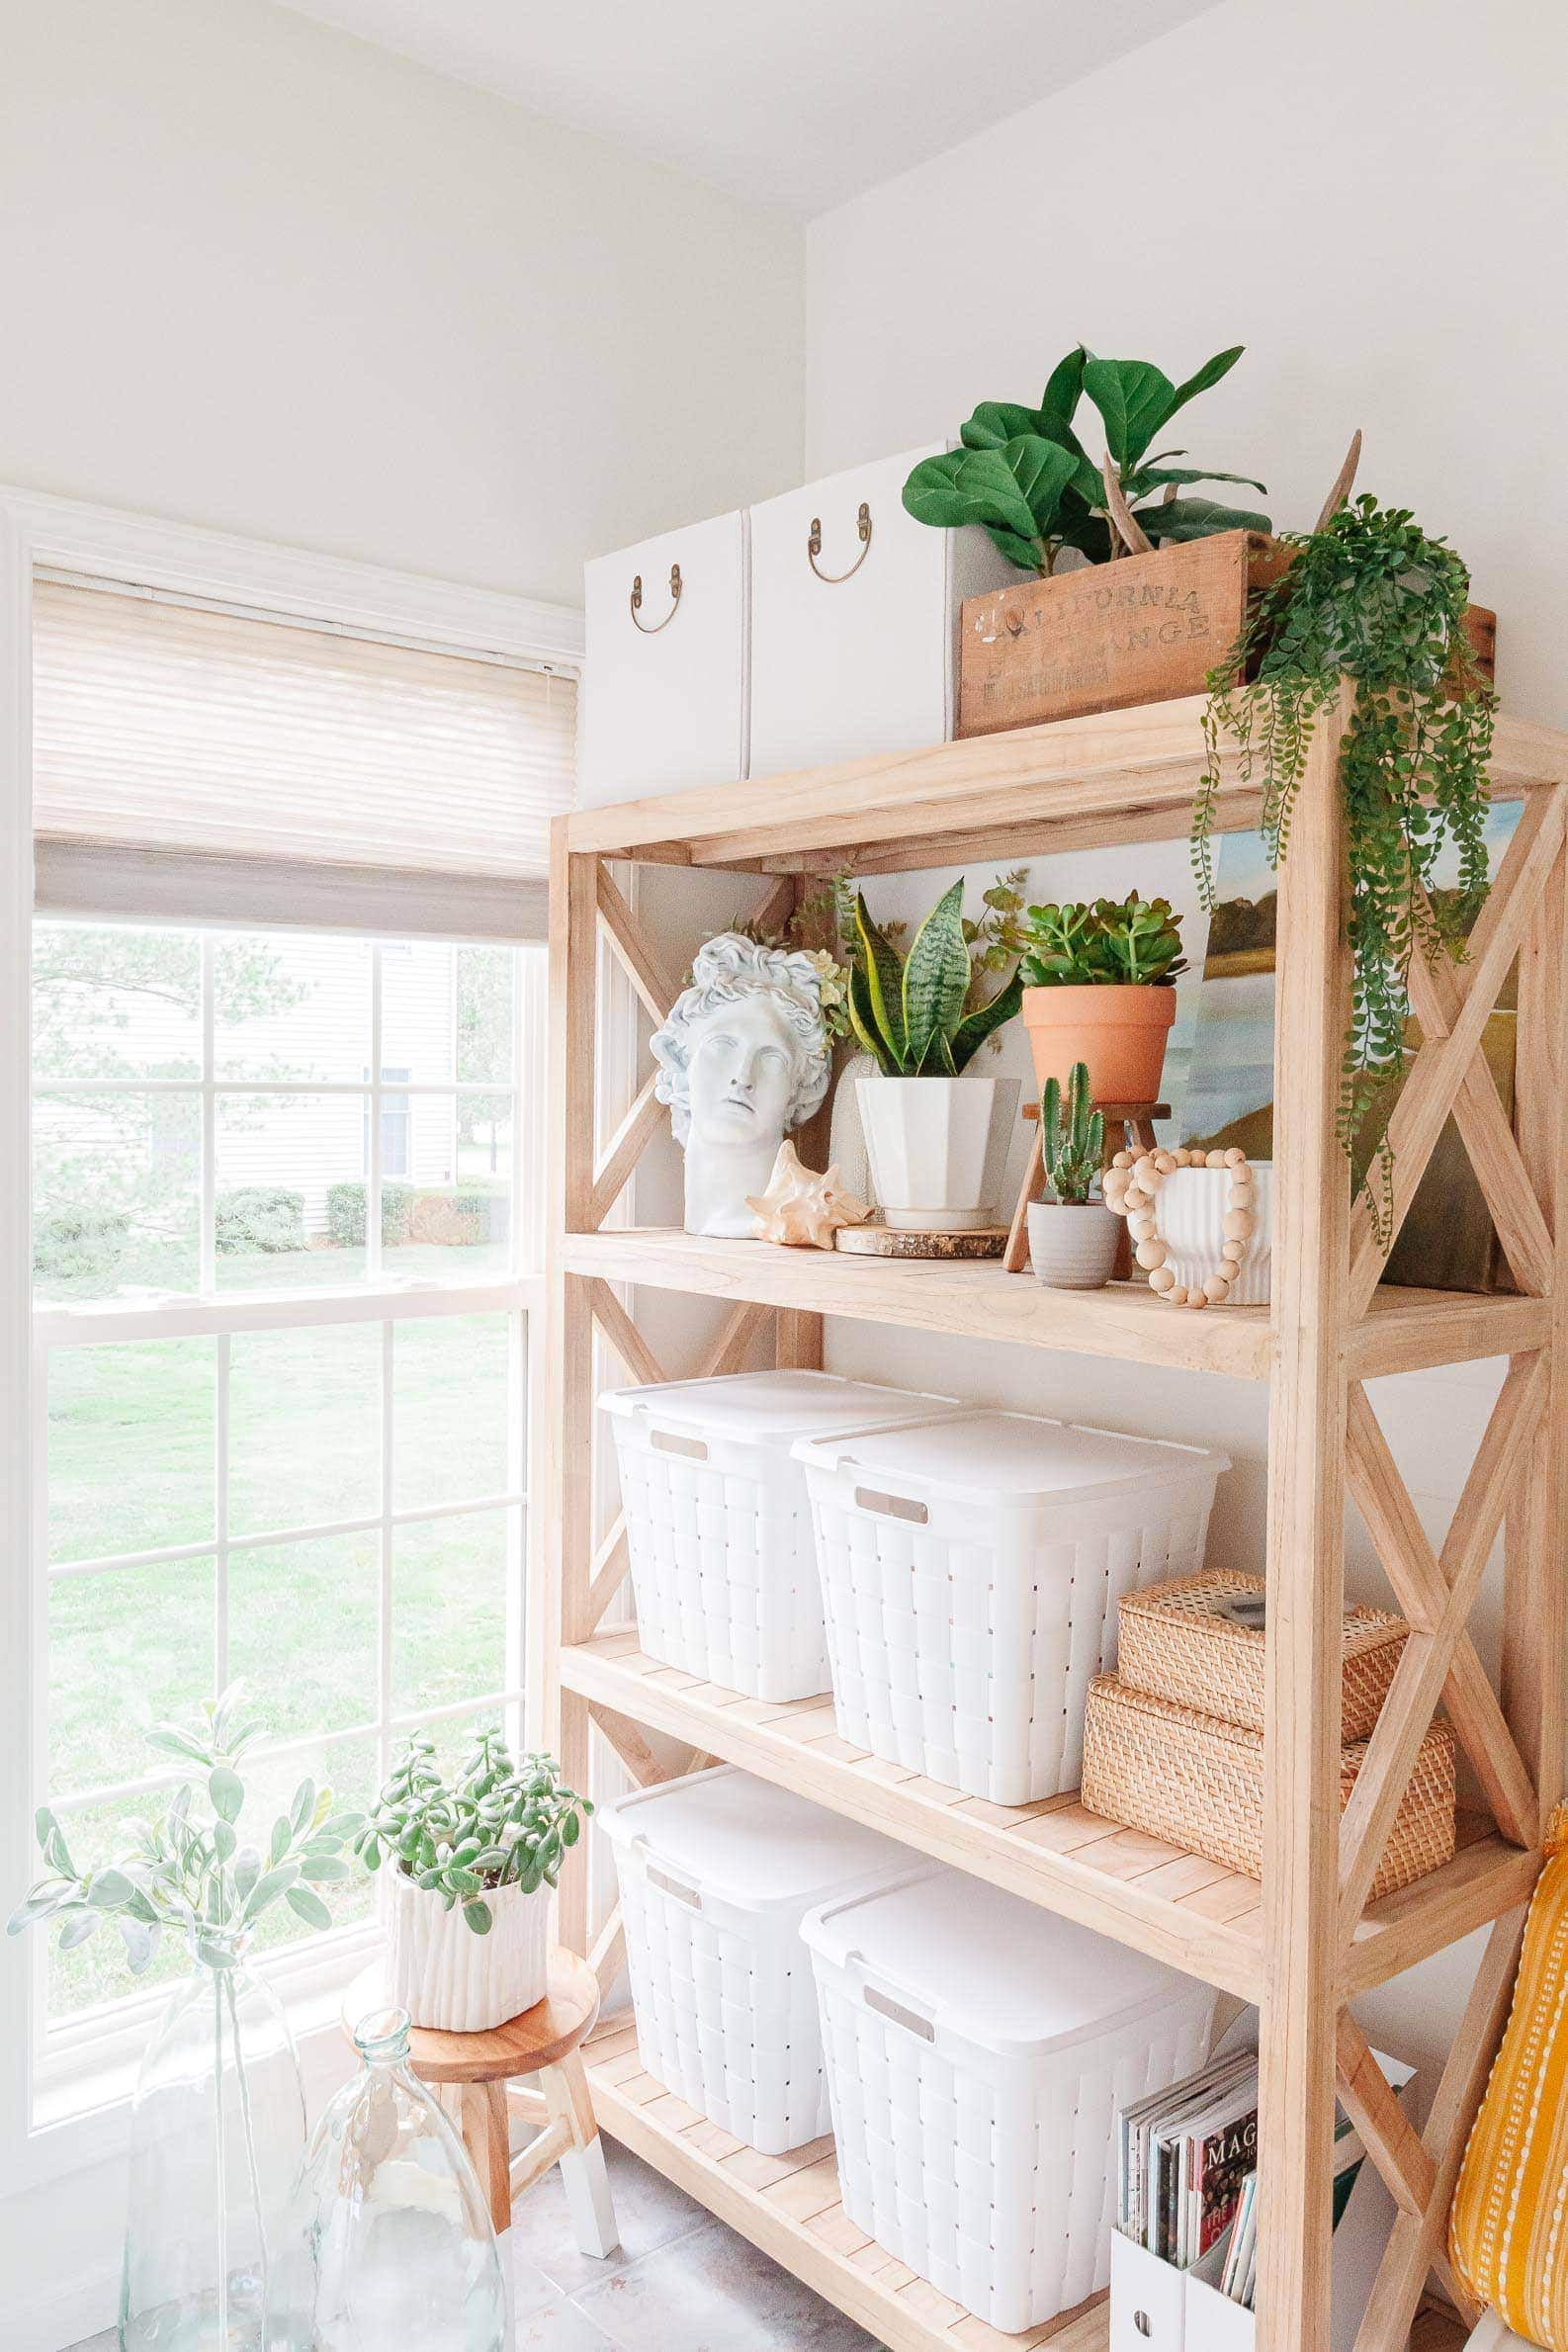 light and bright sunroom turned office space! Using natural light wood bookcase and shelves to store office supplies, home decor, and cute plants